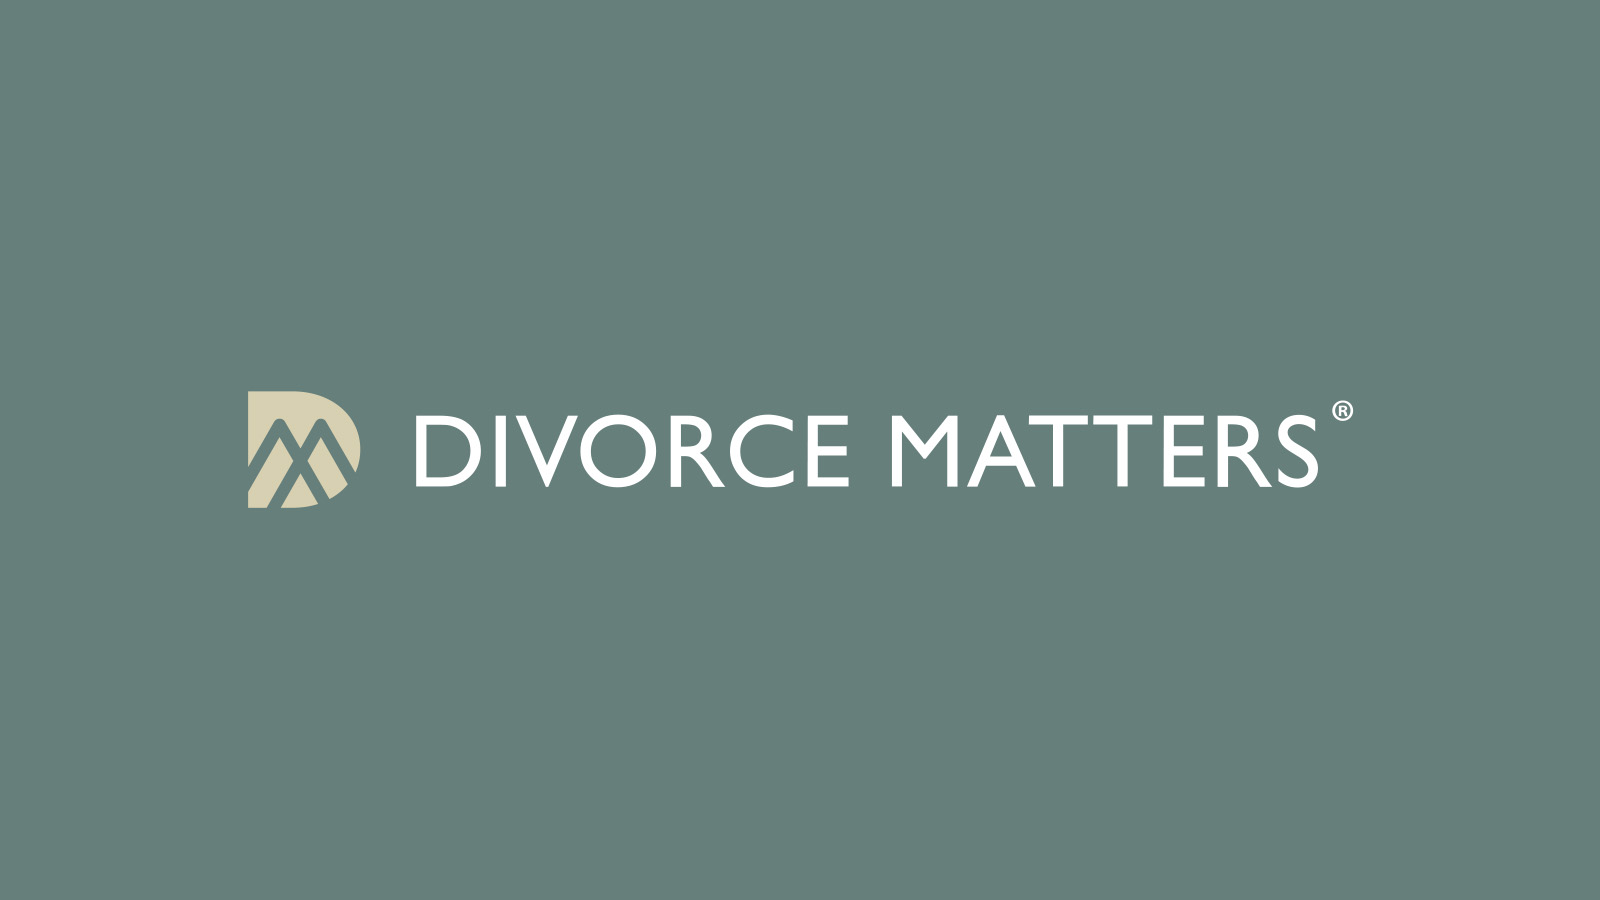 October 9th, 2020 – Divorce Matters Attorney Kim Moreno